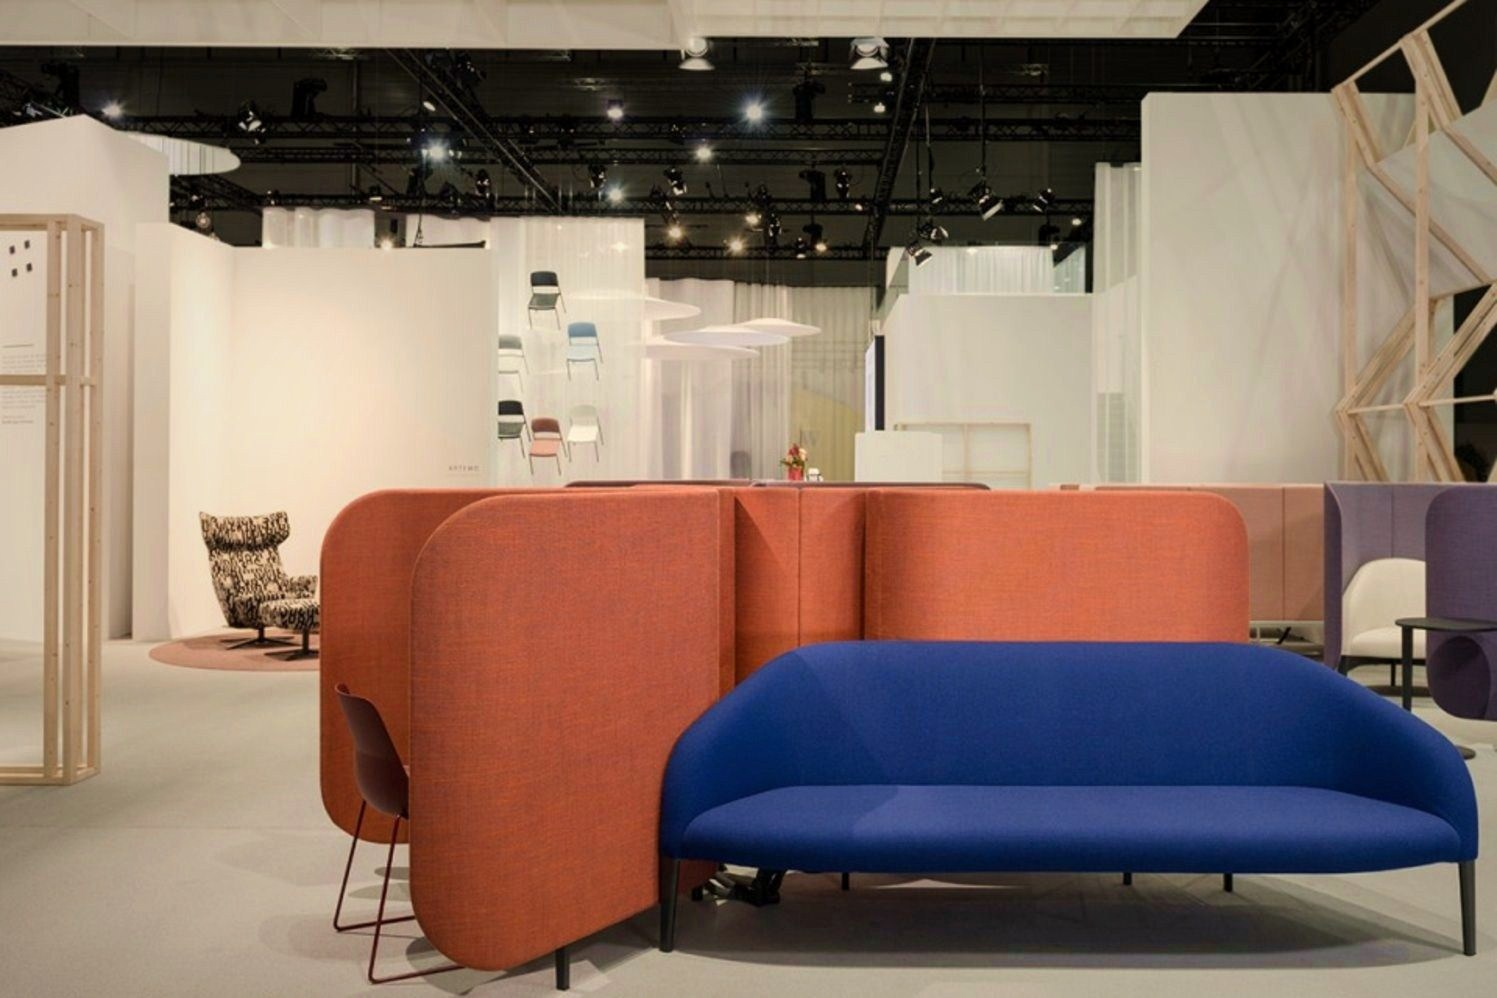 Open style exhibition stand of Brunner in Orgatec 2016 showcasing products in new inviting view and structure arrangement (6)